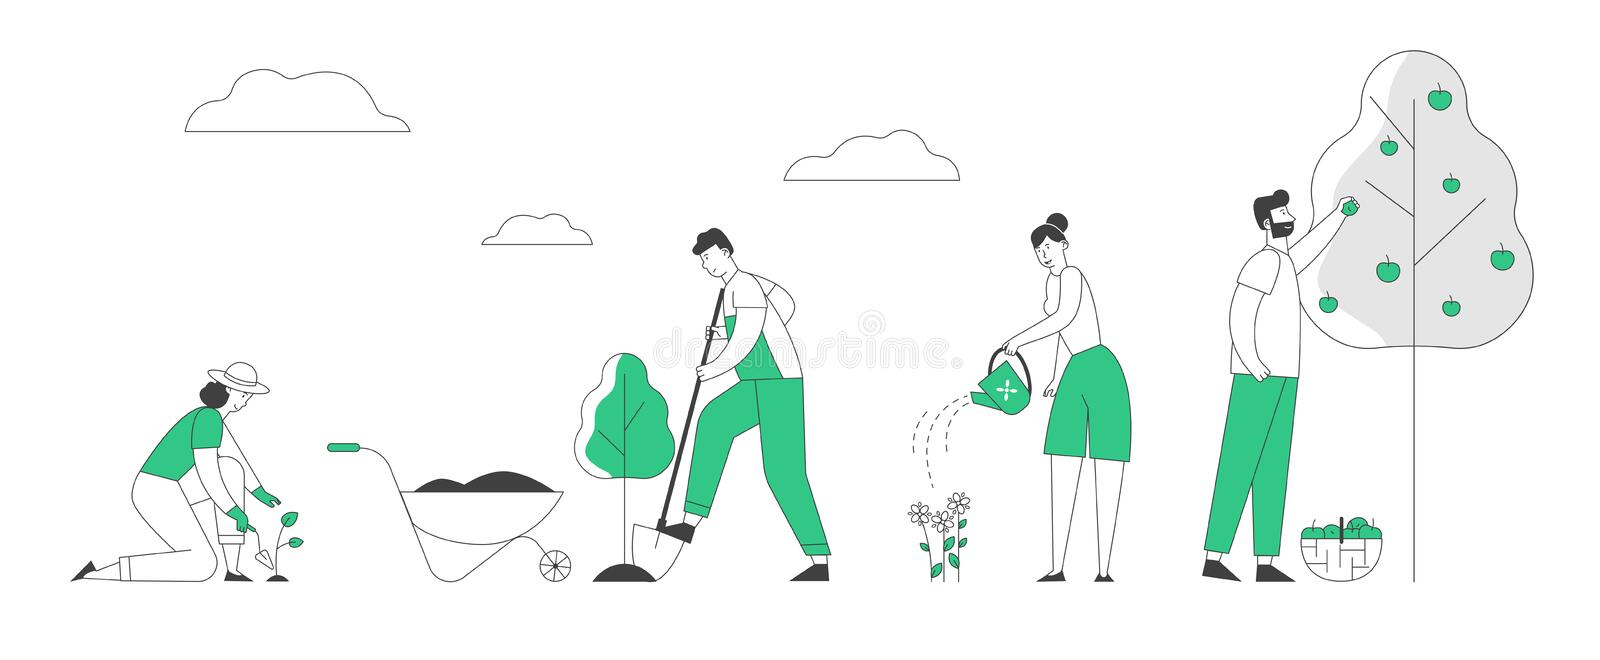 Man and Woman Farmers or Gardeners Planting and Caring of Tree Sprout and Pick Apple Harvest. Happy Couple Characters Harvesting Ripe Fruits in Summer Garden vector illustration